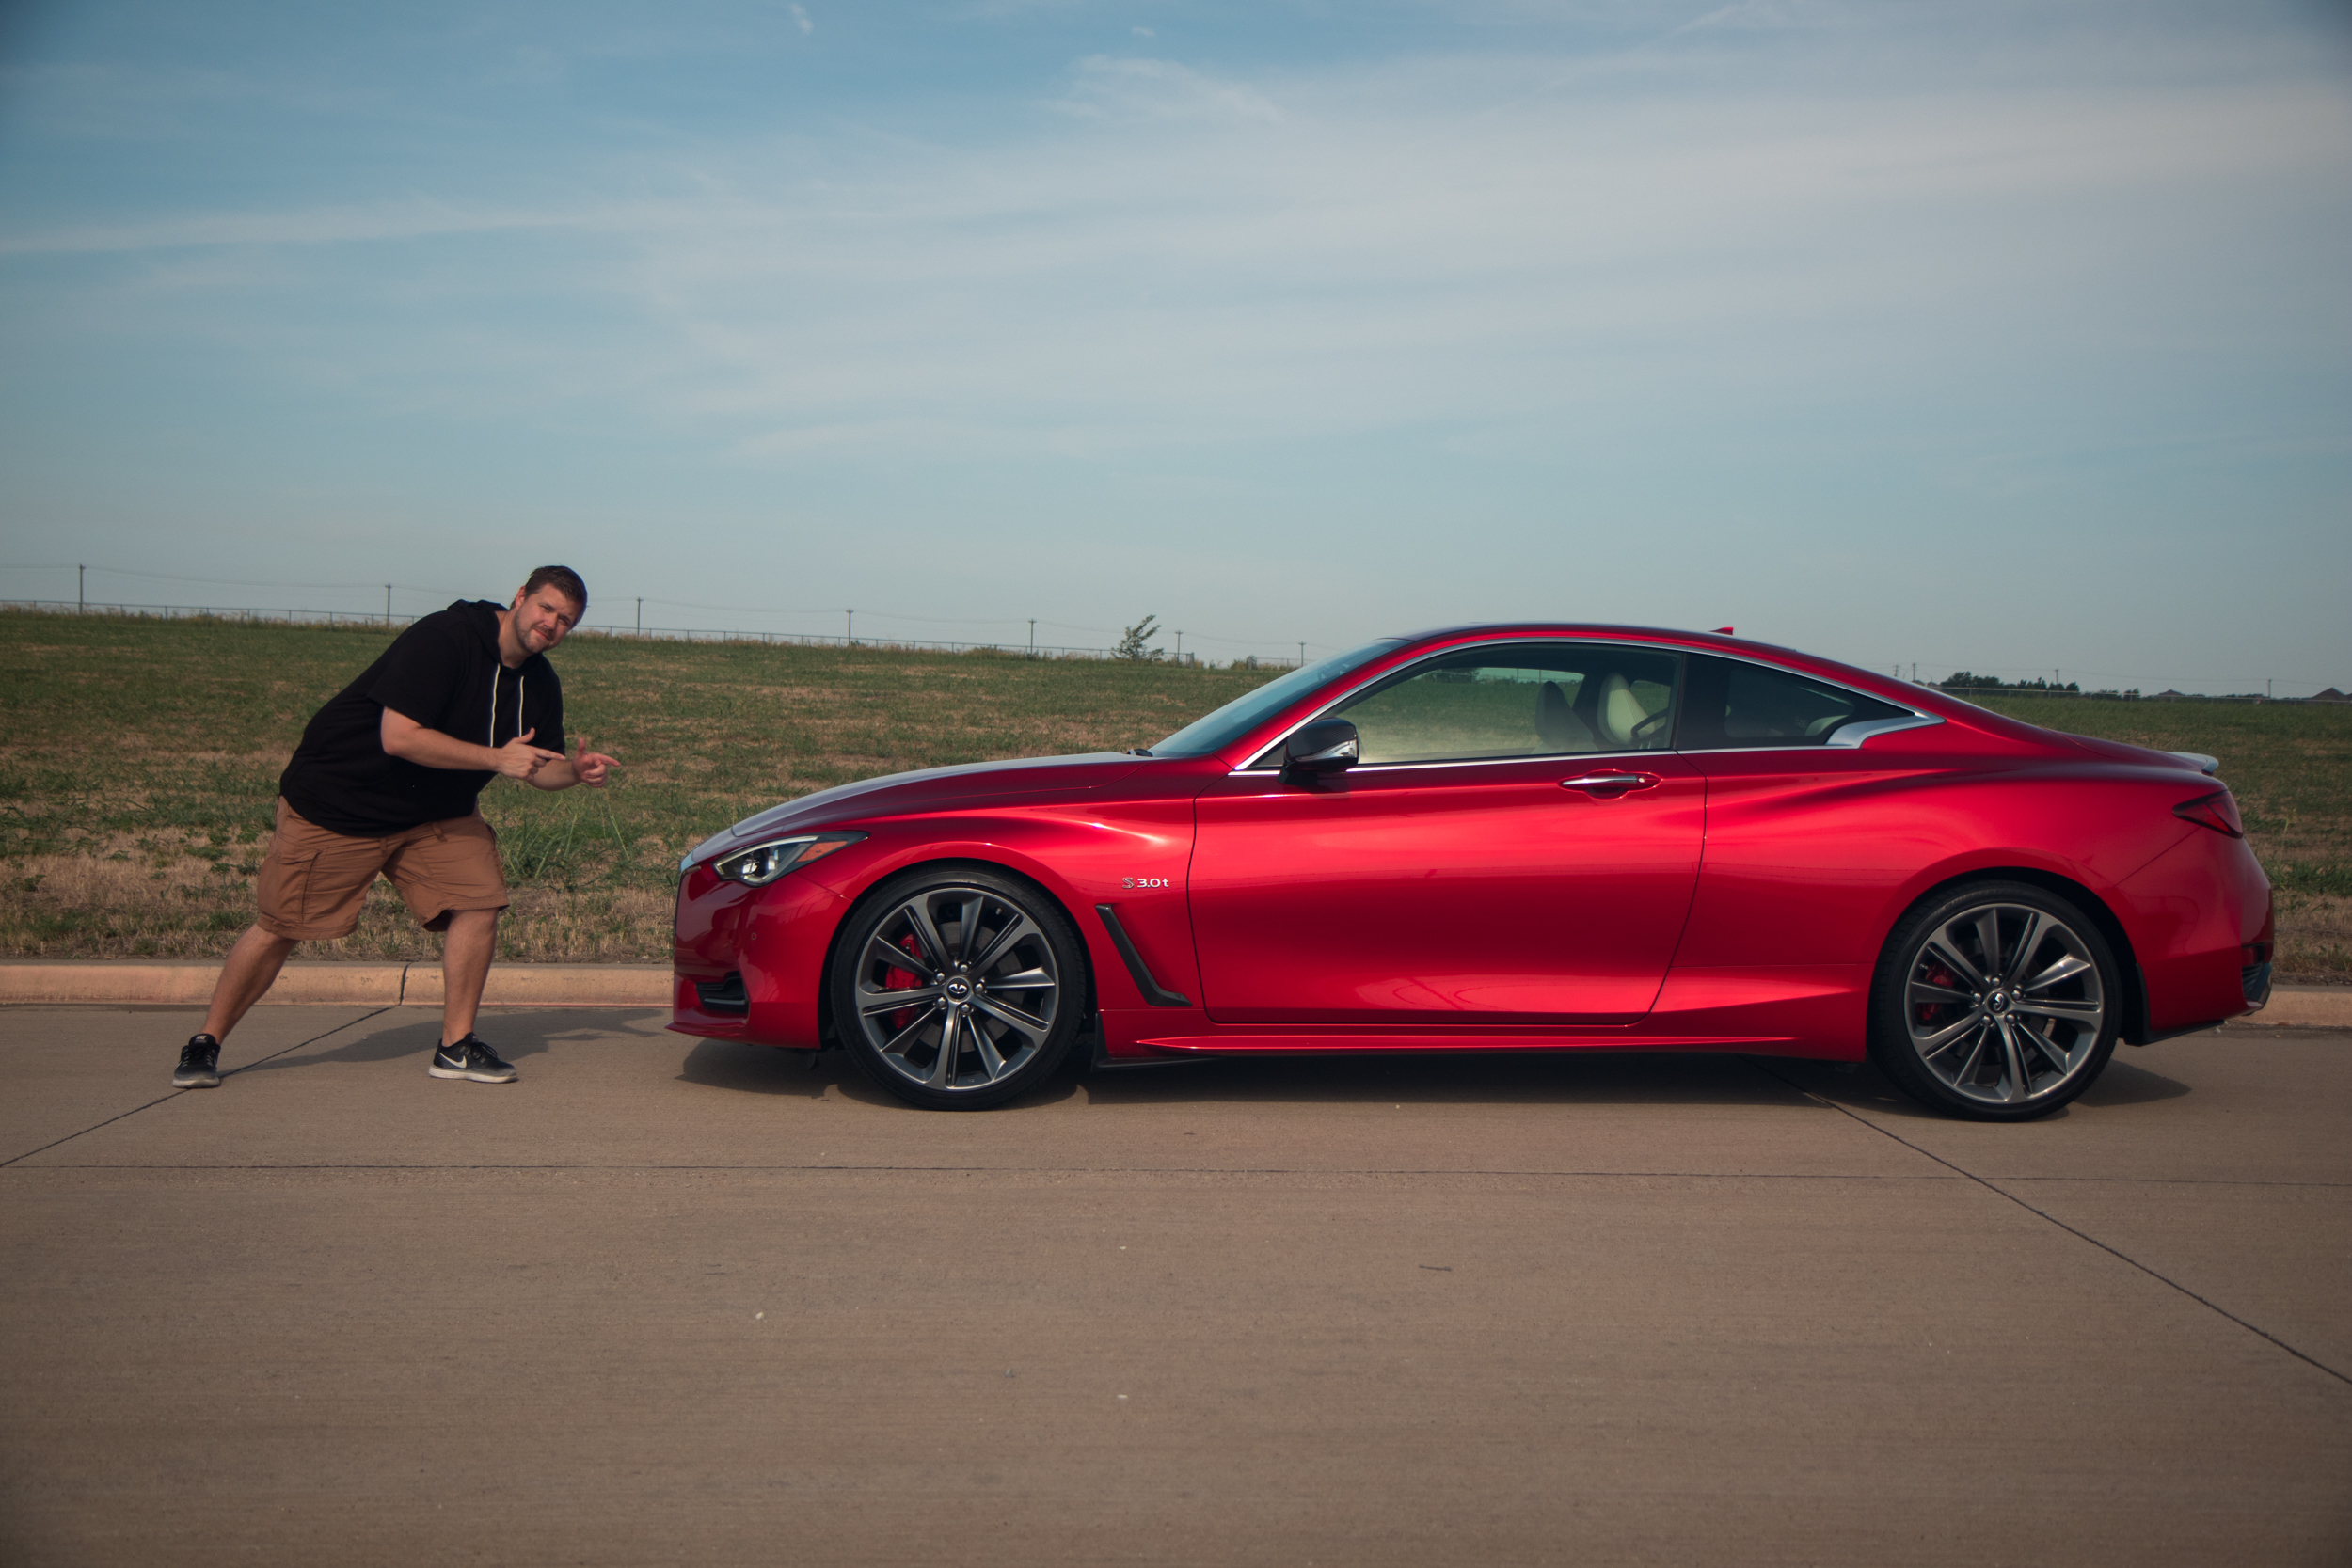 2018-Infiniti-Q60s-Red-Sport-400–txgarage—14